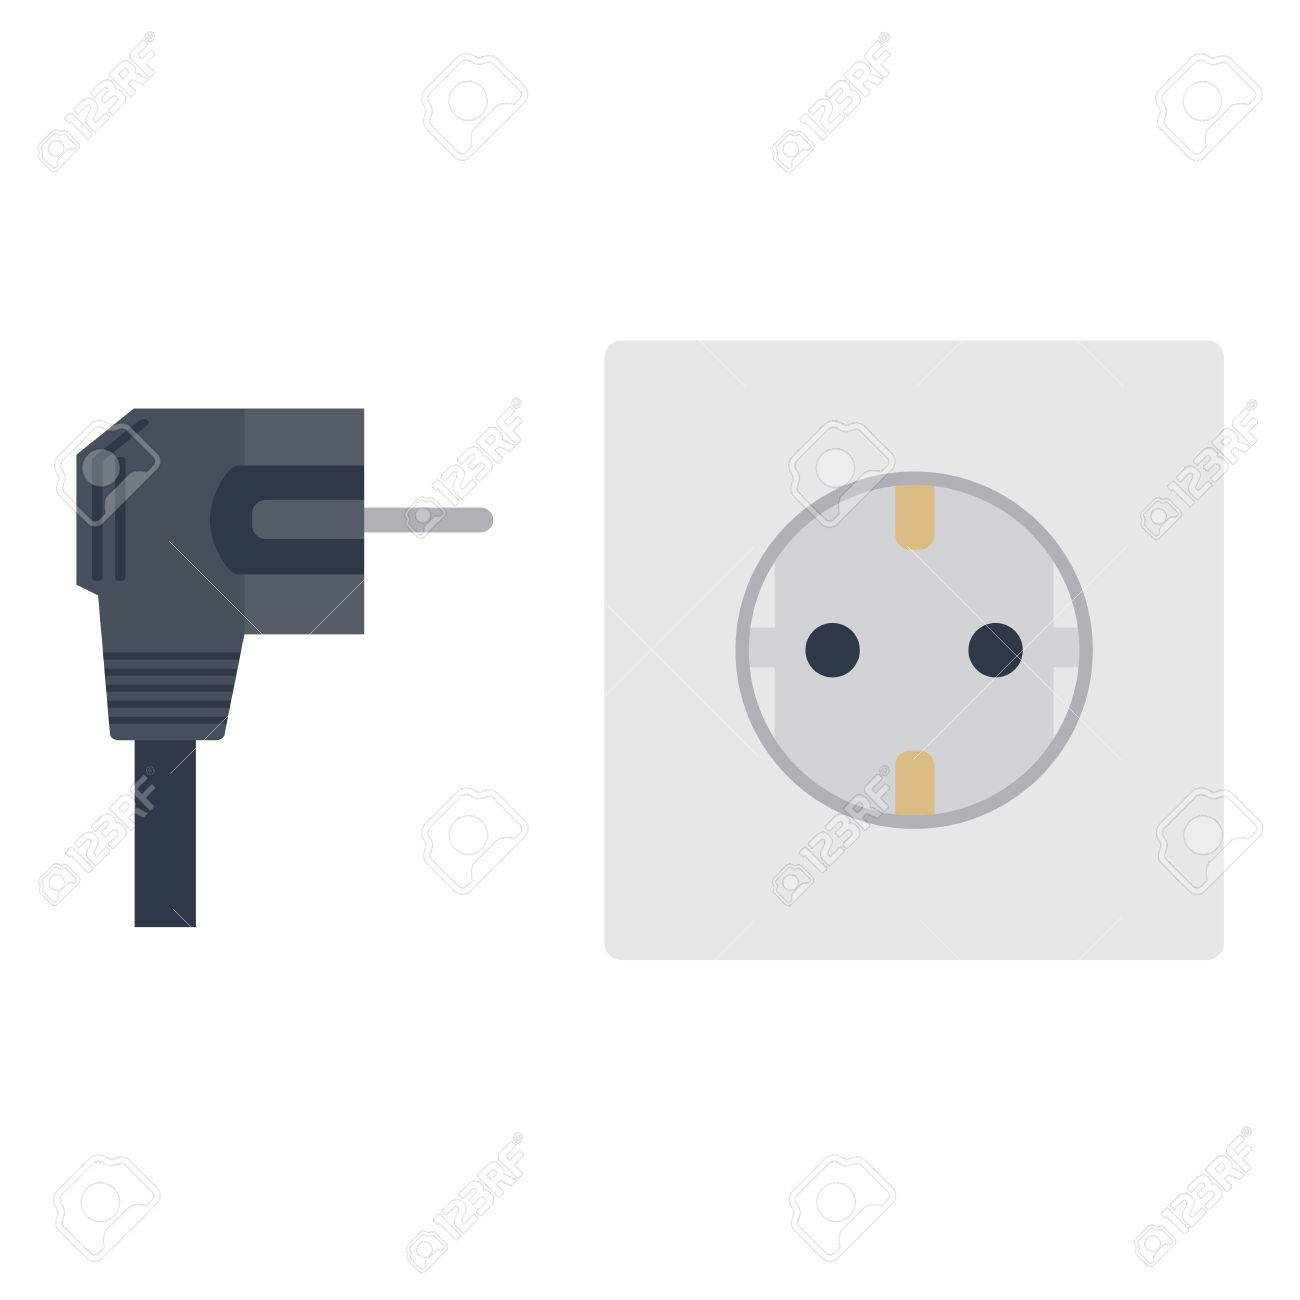 Electric Outlet Illustration On White Background Energy Socket Wiring Cable Electrical Plug Appliance Interior Icon